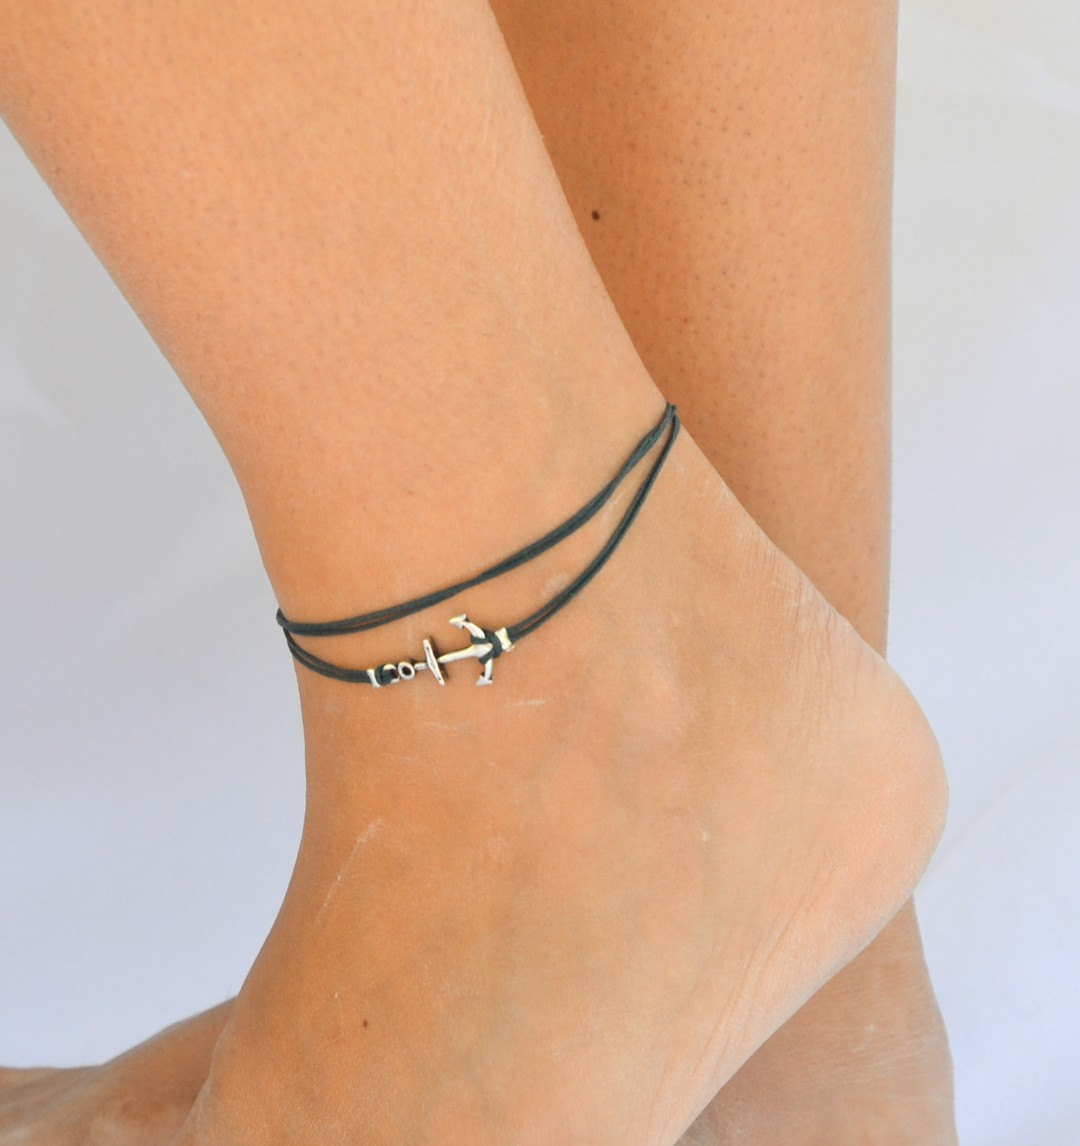 leg bracelet anchor anklet, blue dainty wrap anklet with a silver anchor charm, blue ankle  bracelet, iuucdgk